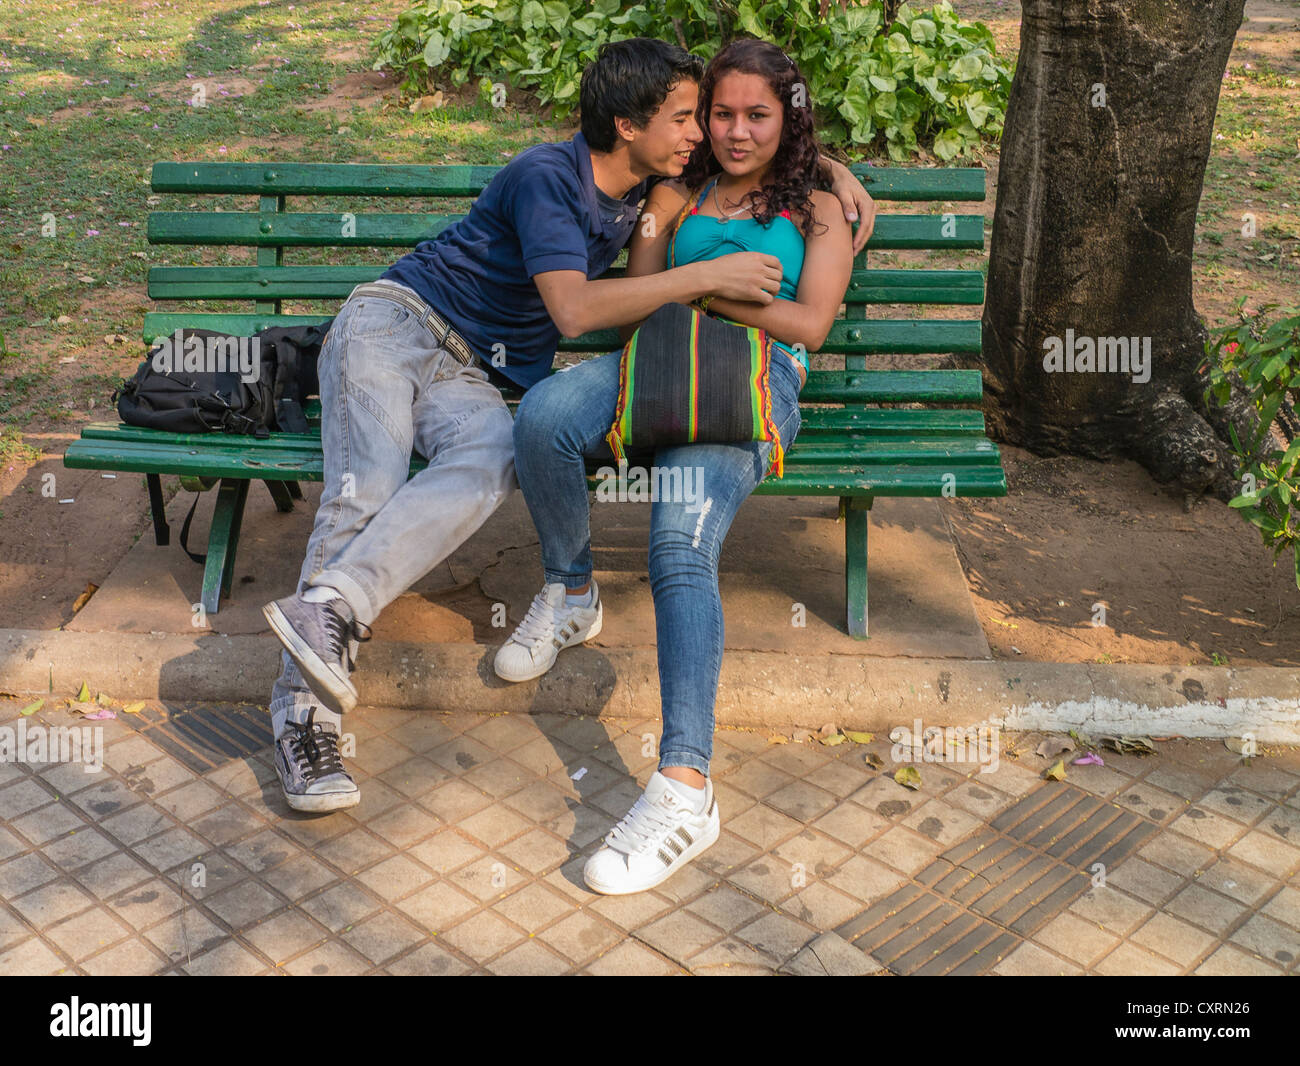 Two Teenage Lovers Embrace On A Park Bench In A City Park In Stock